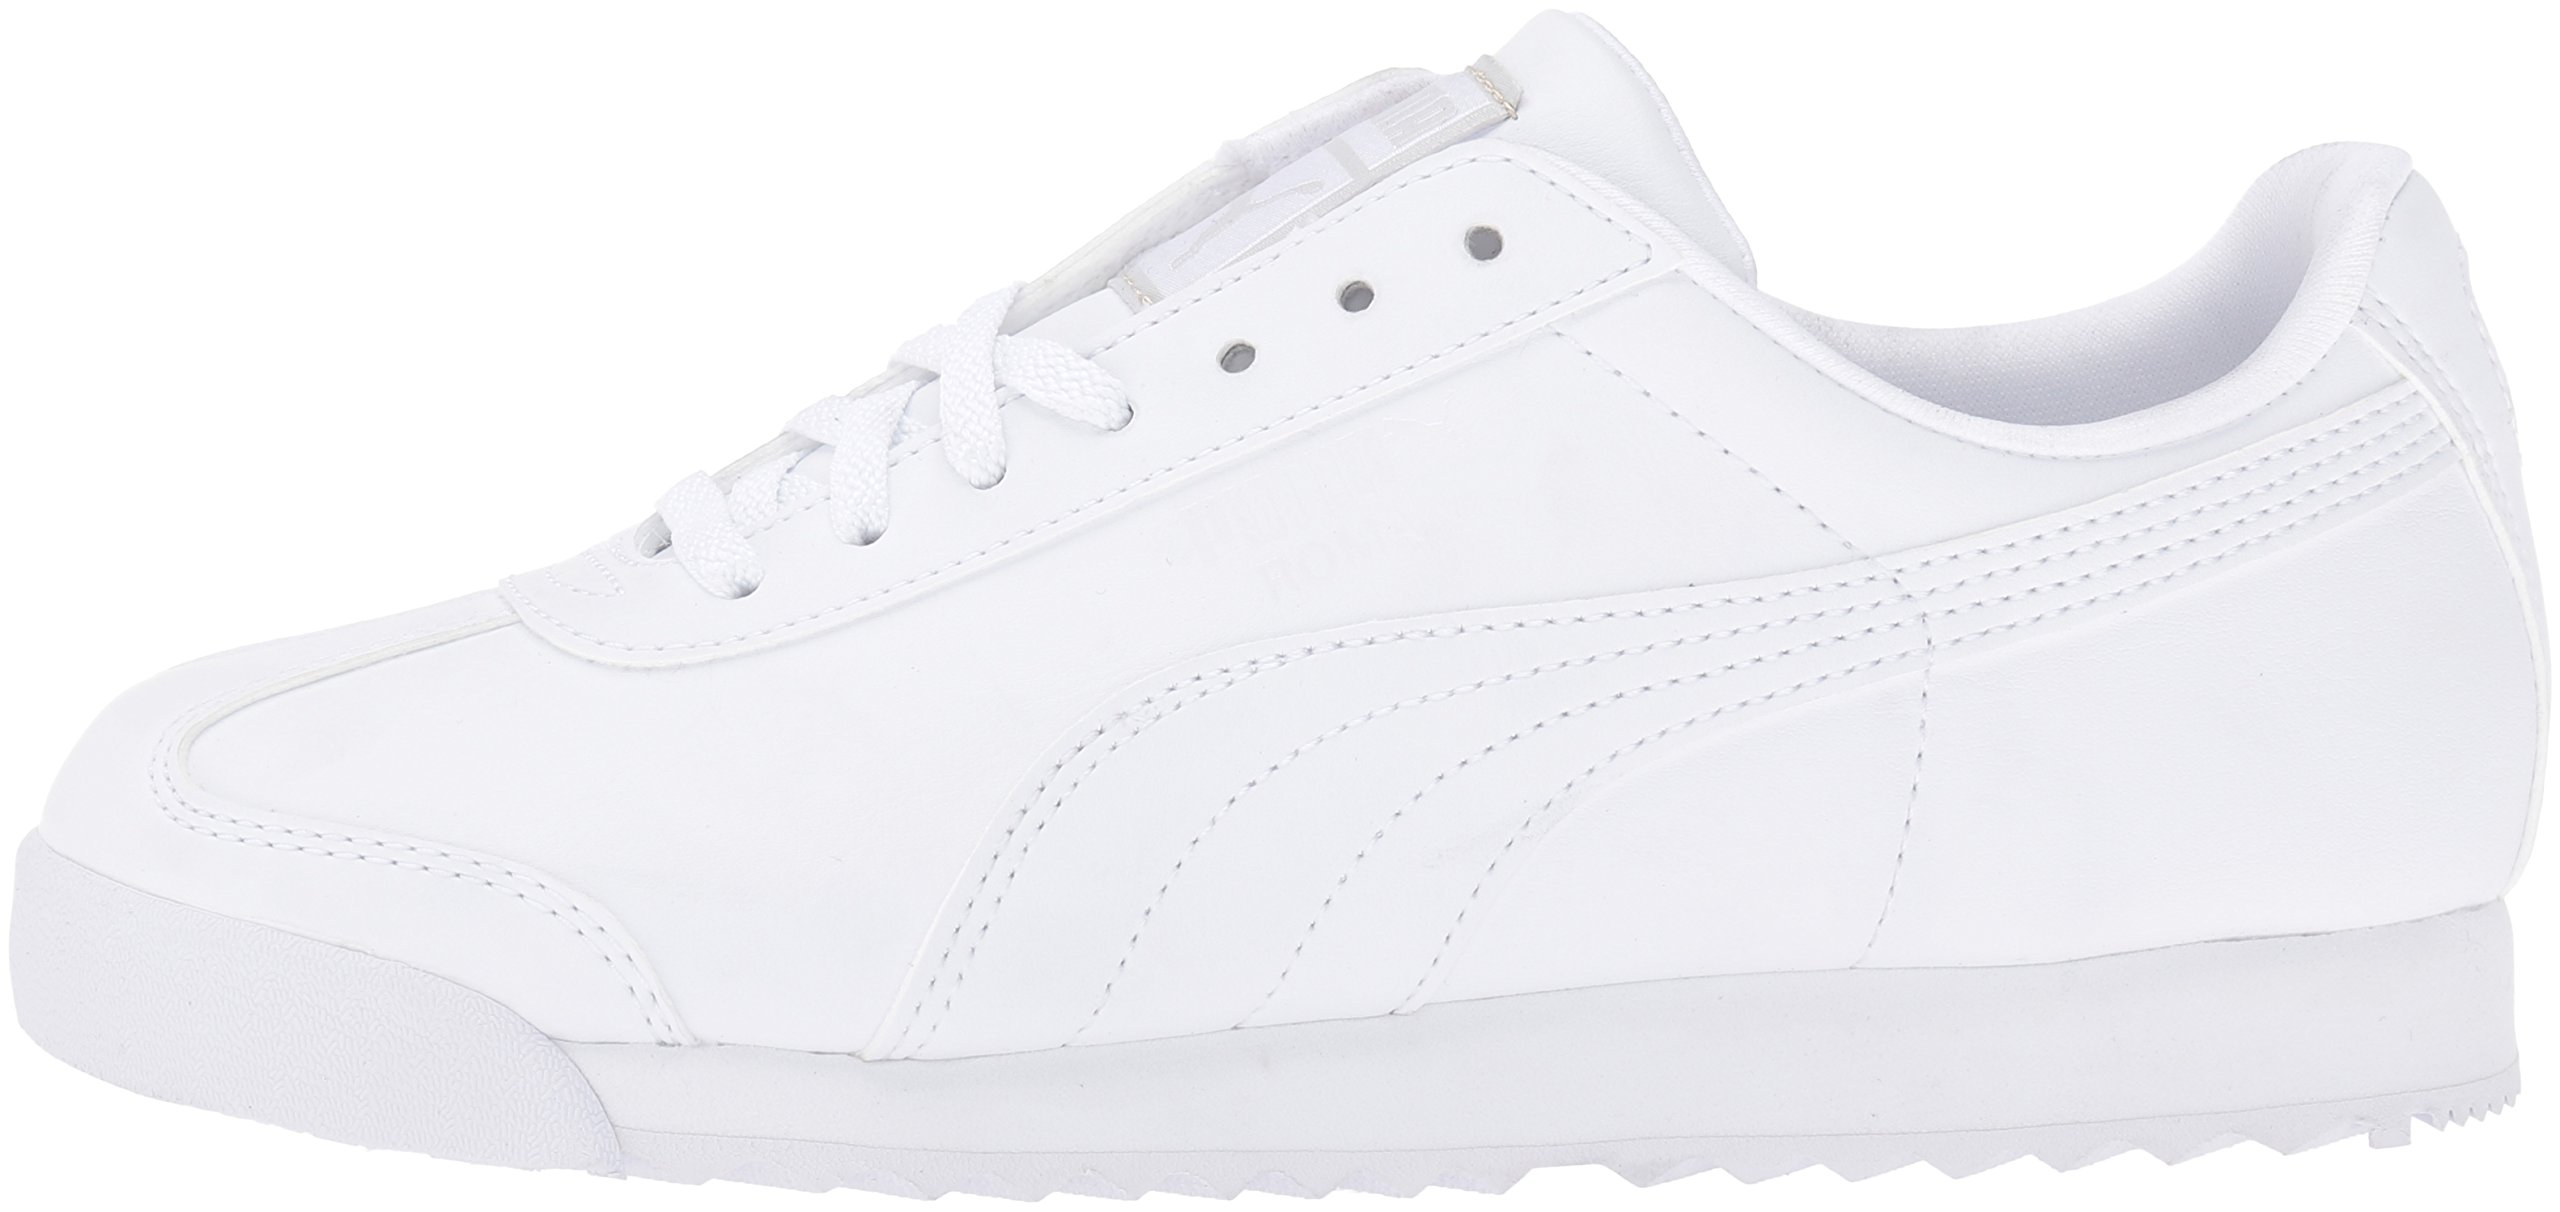 PUMA Roma Basic JR Sneaker , White/Light Gray, 3 M US Little Kid by PUMA (Image #5)